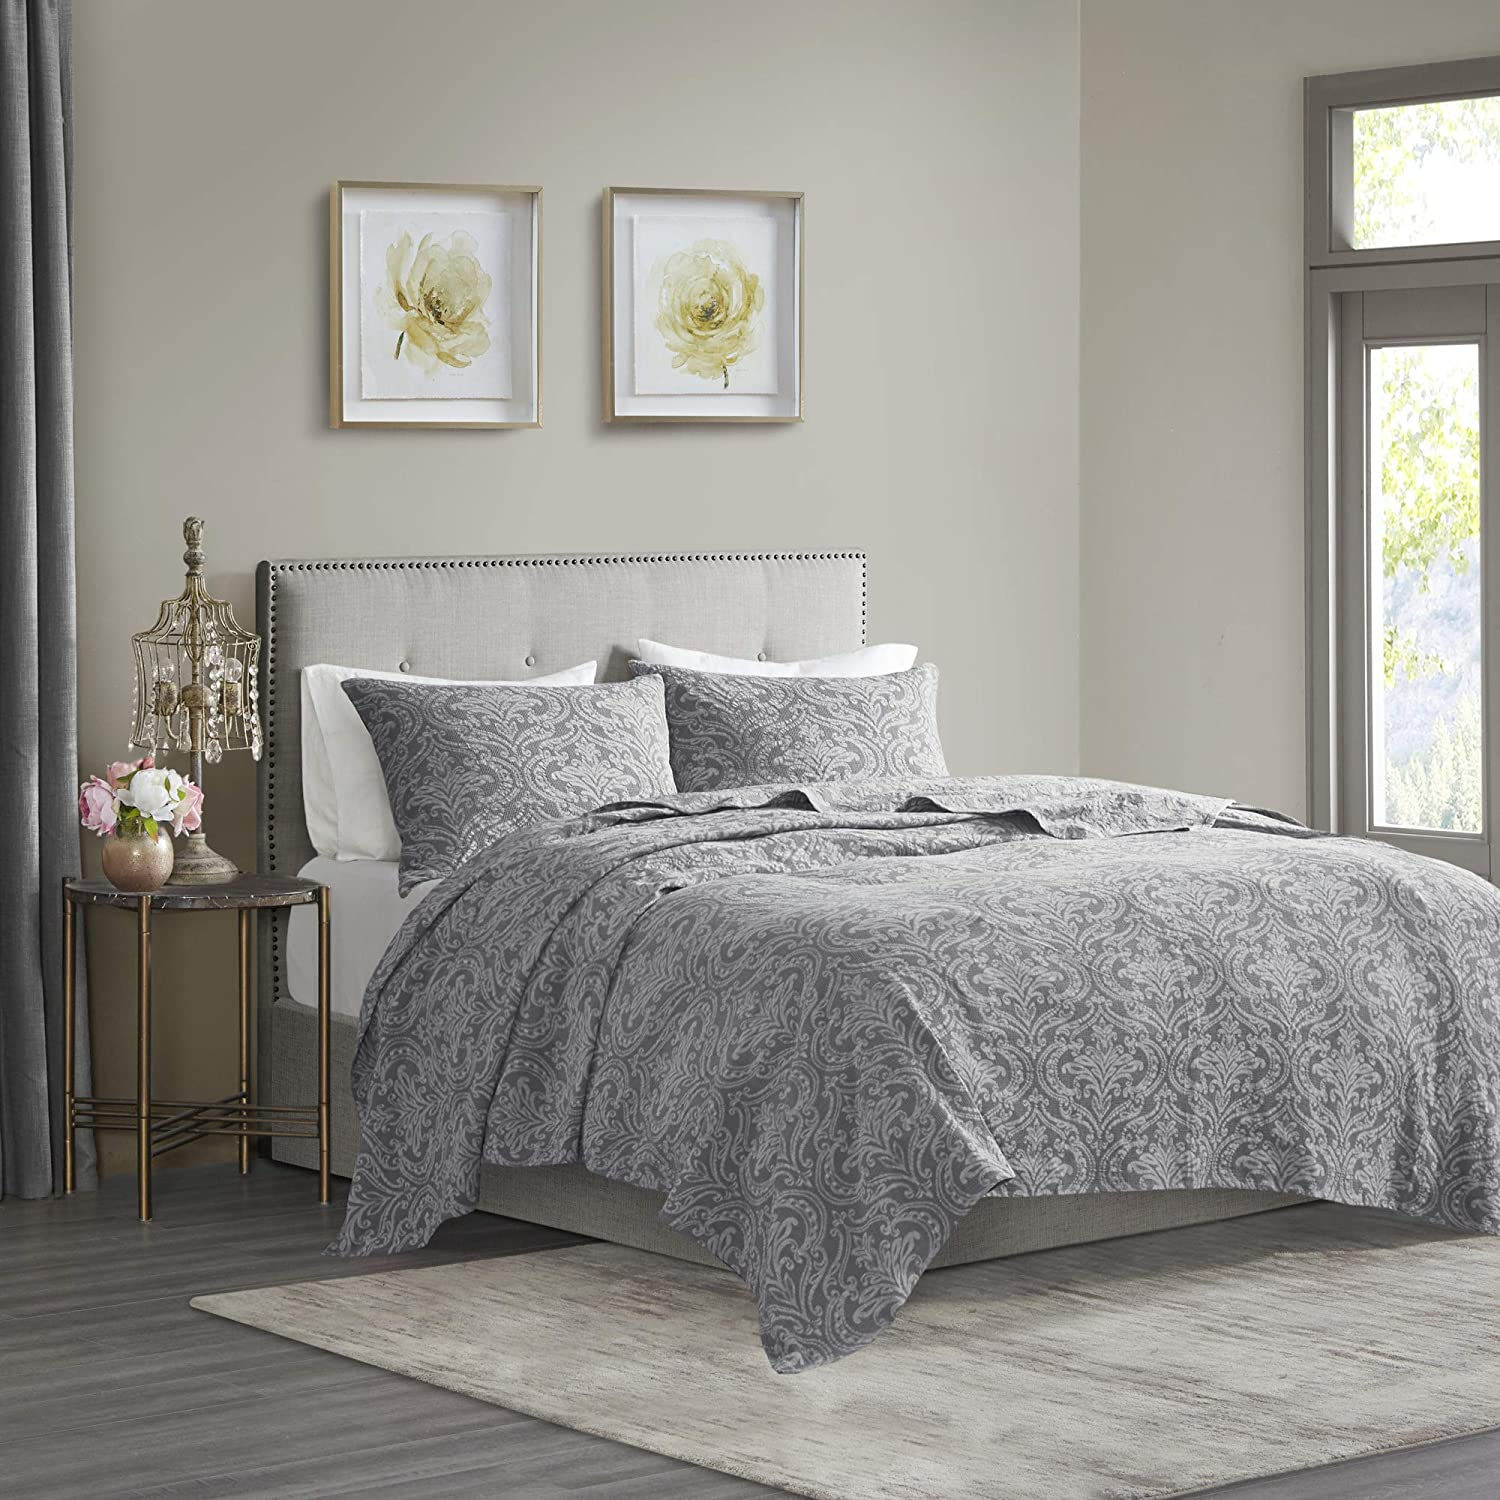 """Madison Park Chantelle 100% Cotton Quilt, Matelasse Damask Design Modern Luxe All Season Bedspread Bed Set with Matching Shams, Full/Queen(90""""x90""""), Grey 3 Piece"""